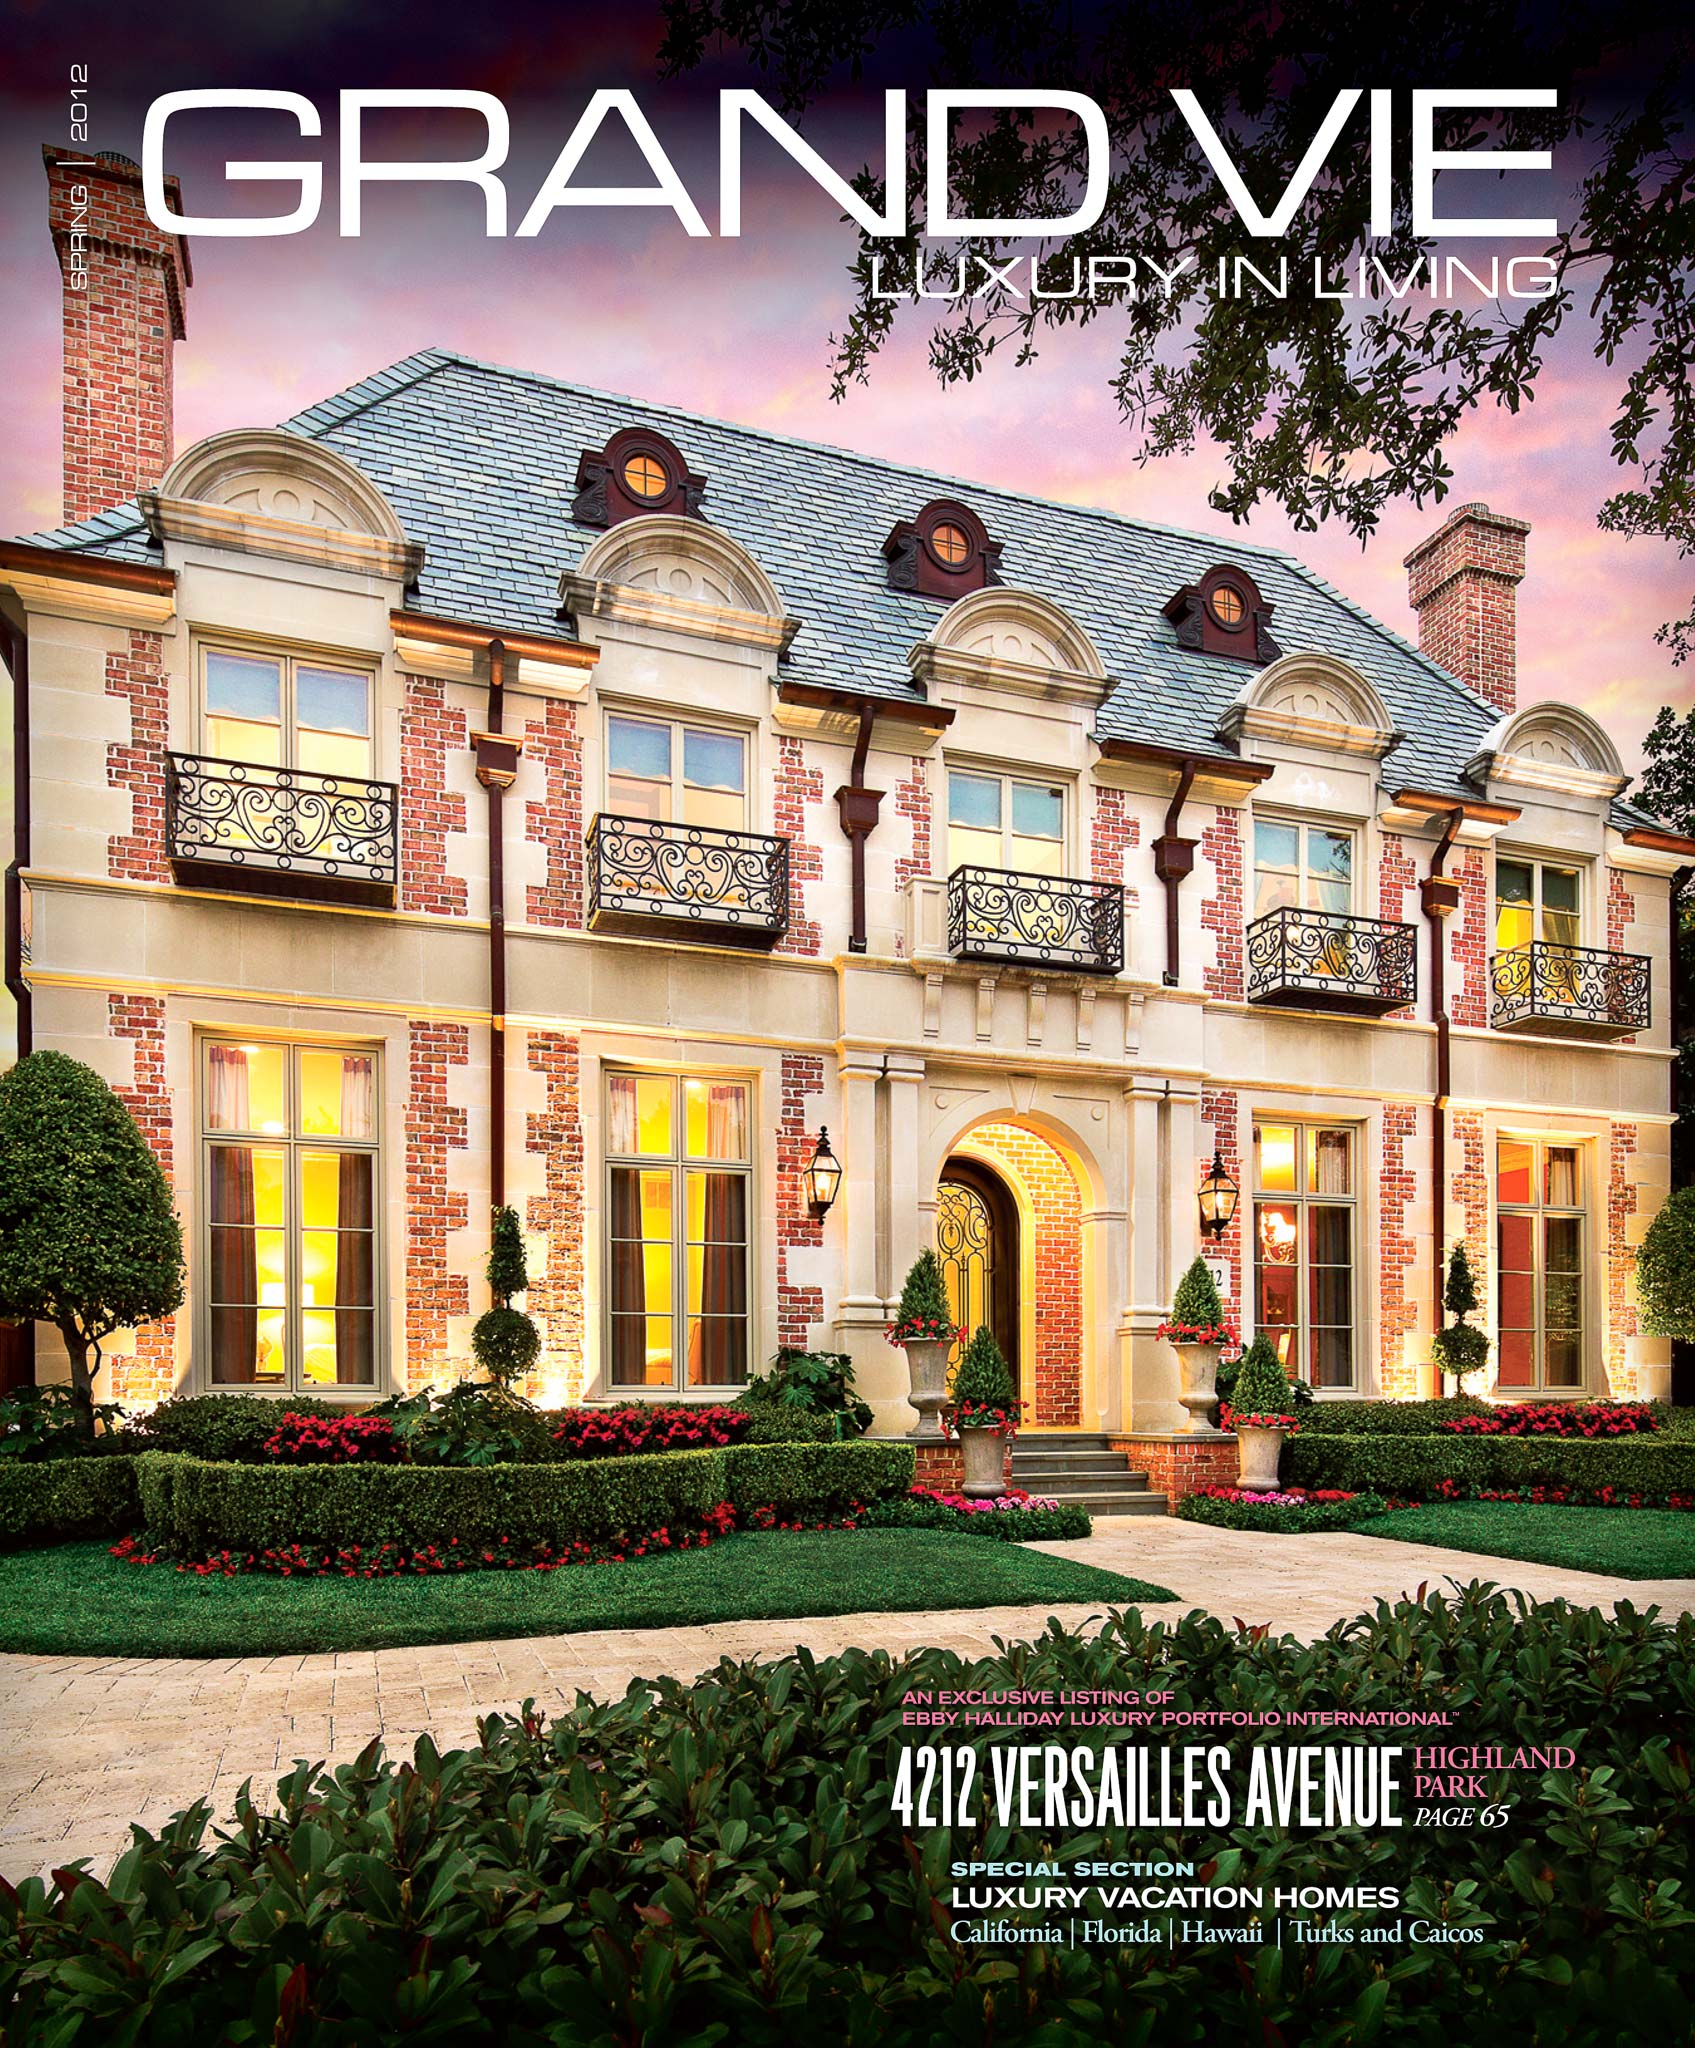 Magazine Cover photo by Sean Gallagher Photography